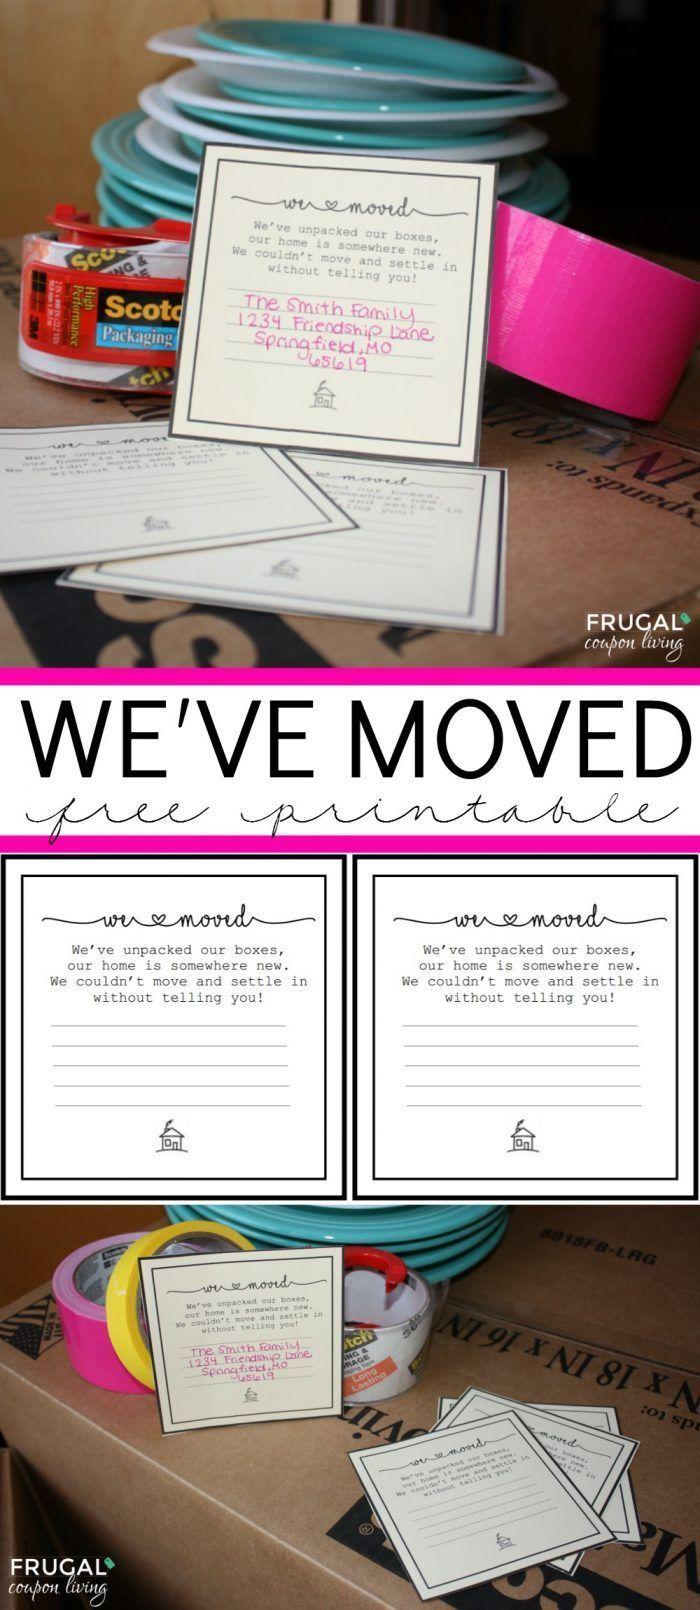 We love this Free Moving Printable - We've Moved! This and the top 50 Moving Hacks and Tips on Frugal Coupon Living.